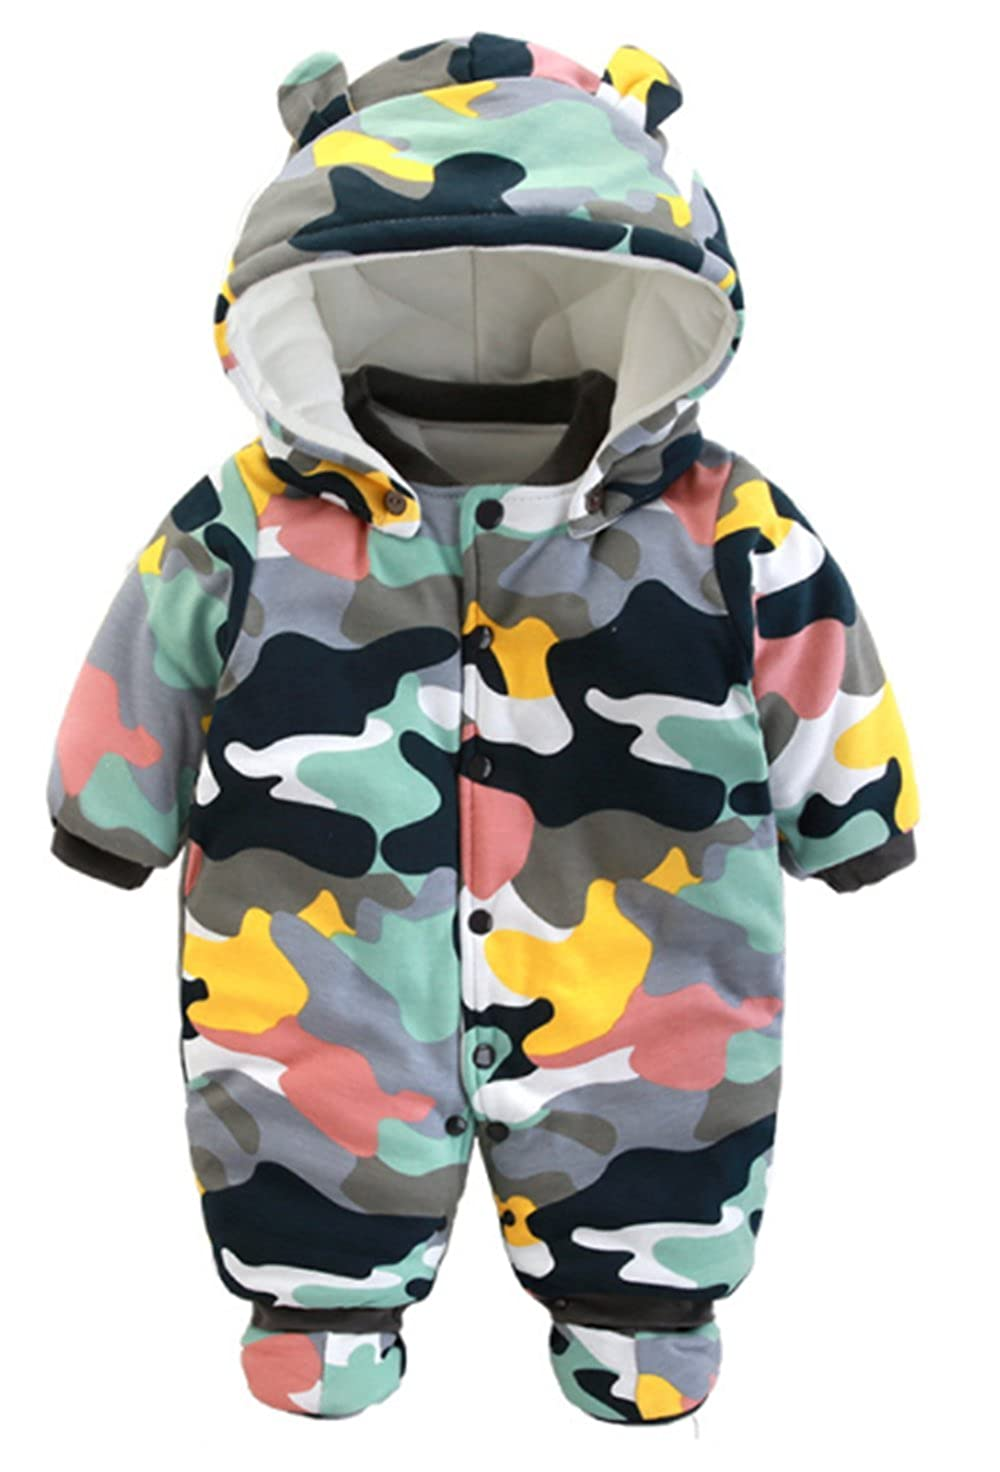 EGELEXY Baby Boys Girls Camouflage Cartoon Hooded Romper Winter Warm Thick Jumpsuit